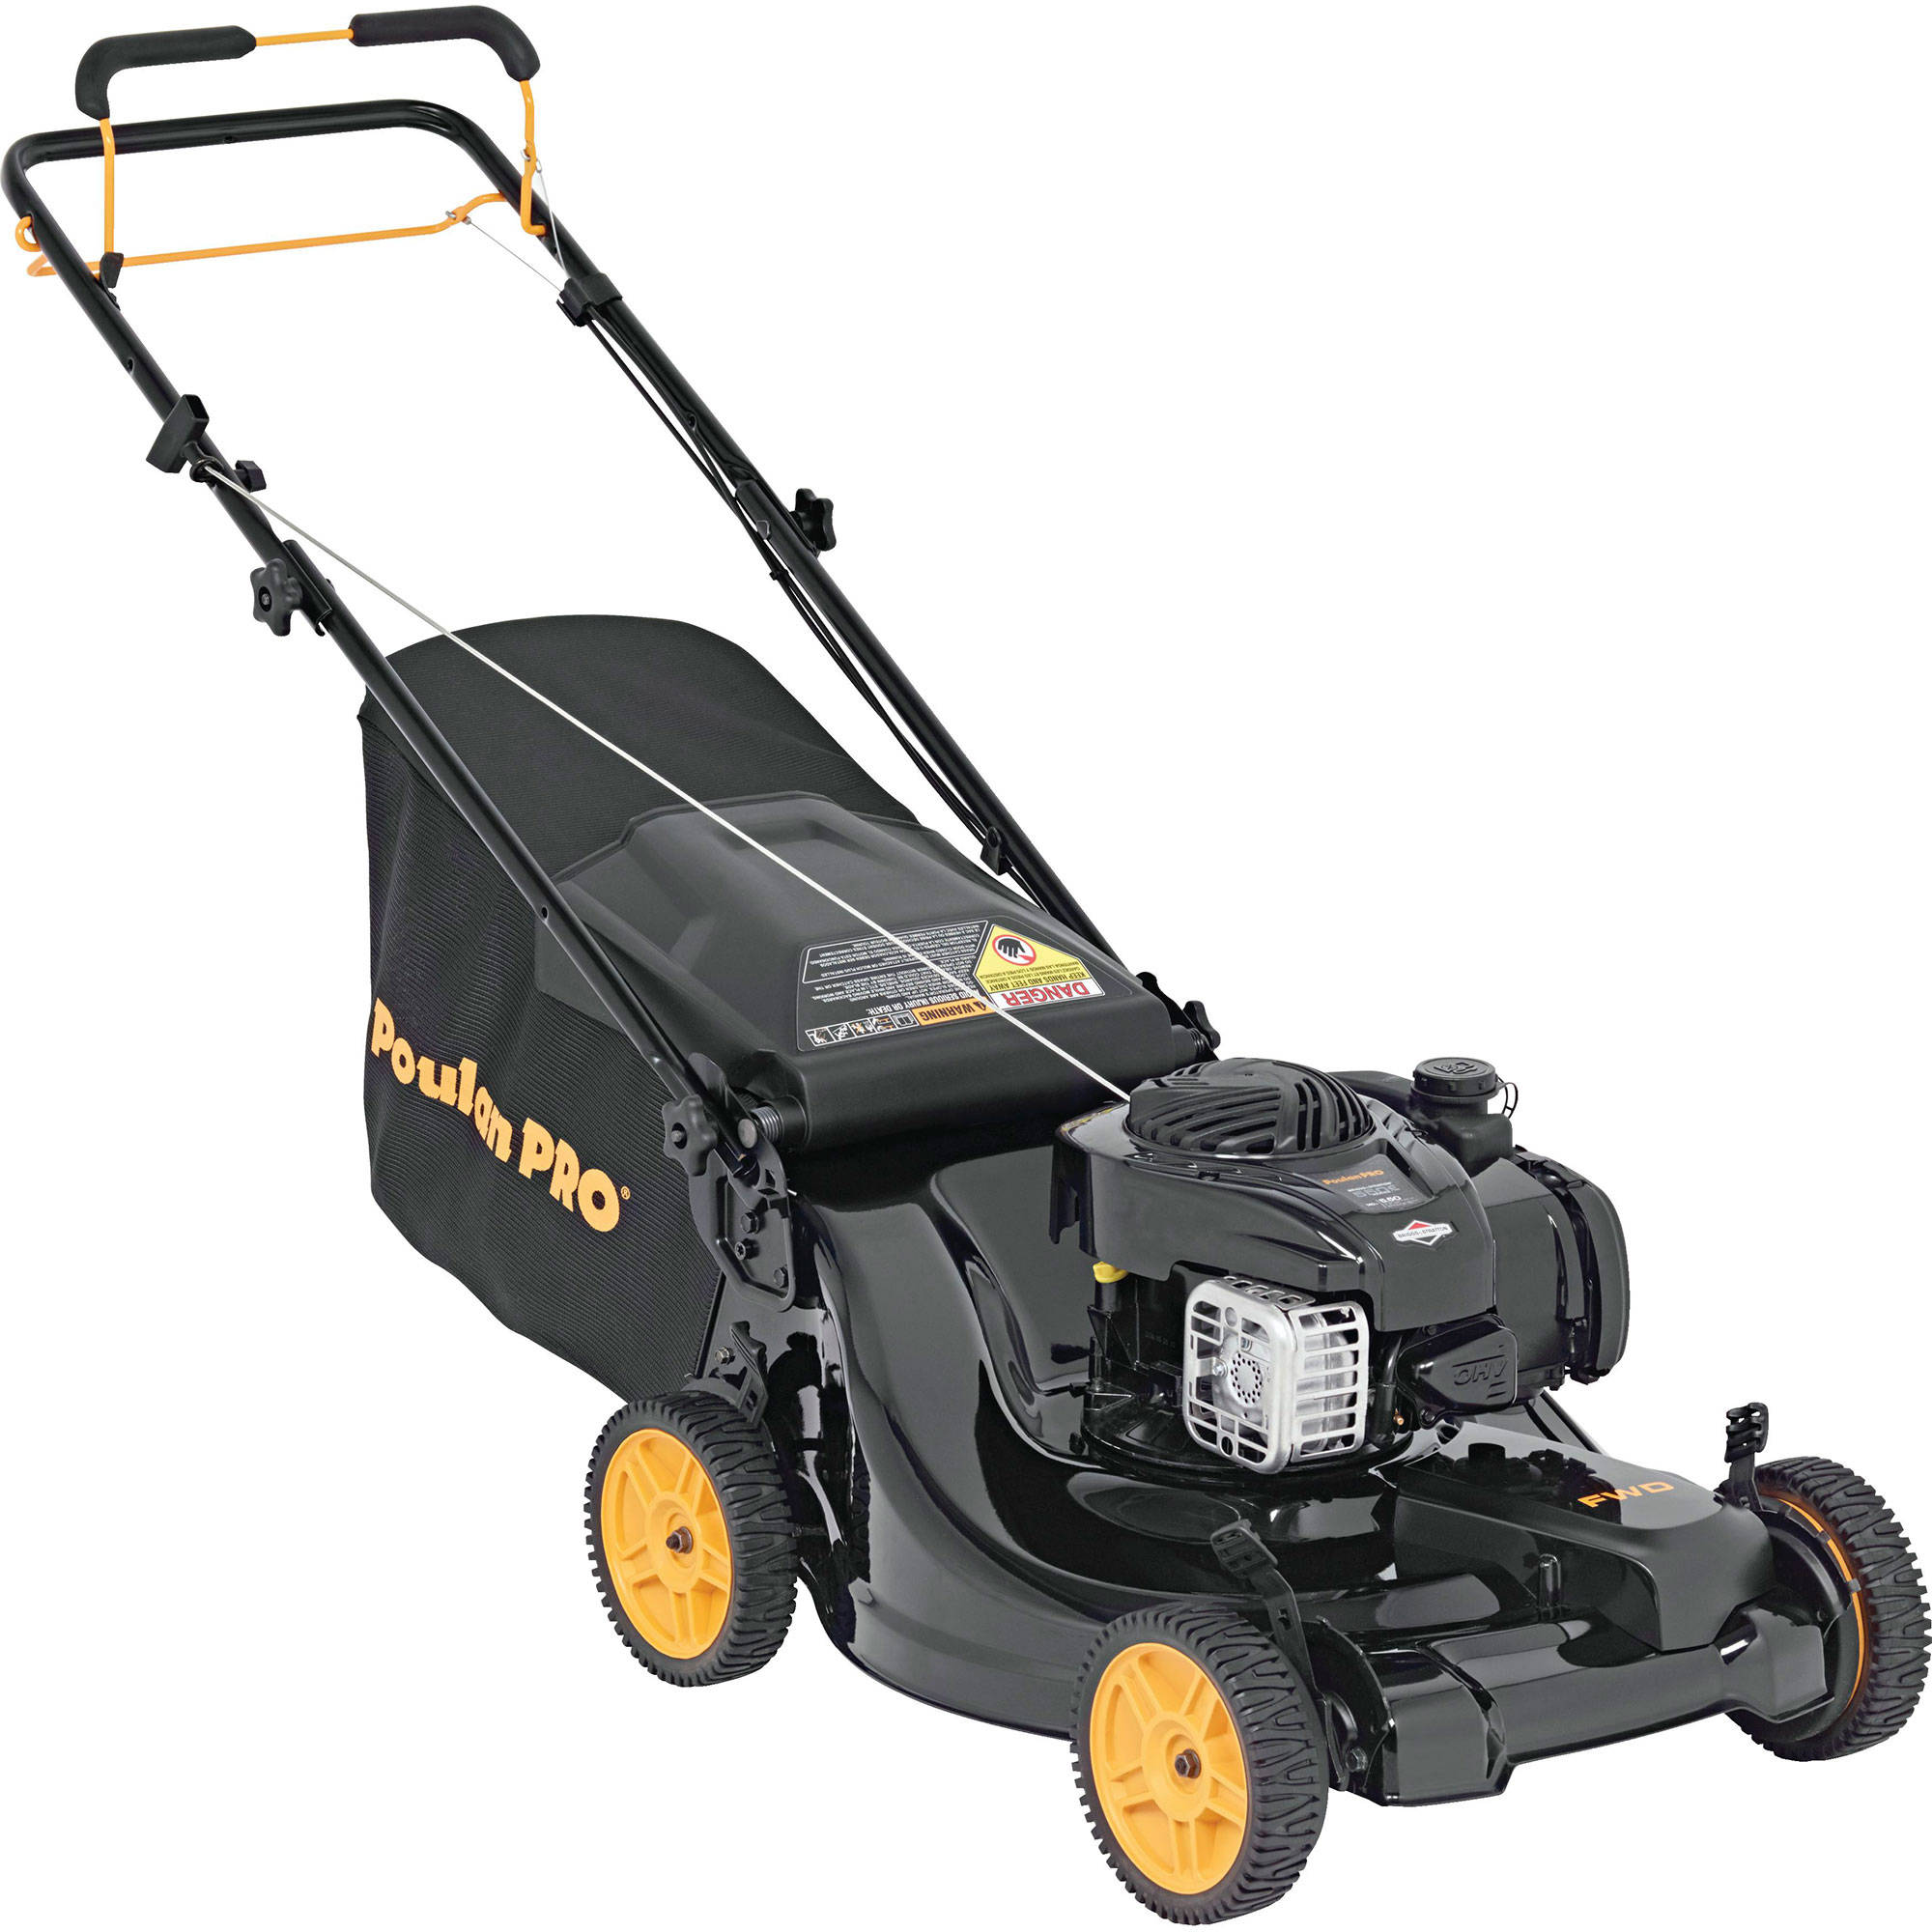 Murray Self Propelled Lawn Mower : Murray quot gas powered lawn mower walmart